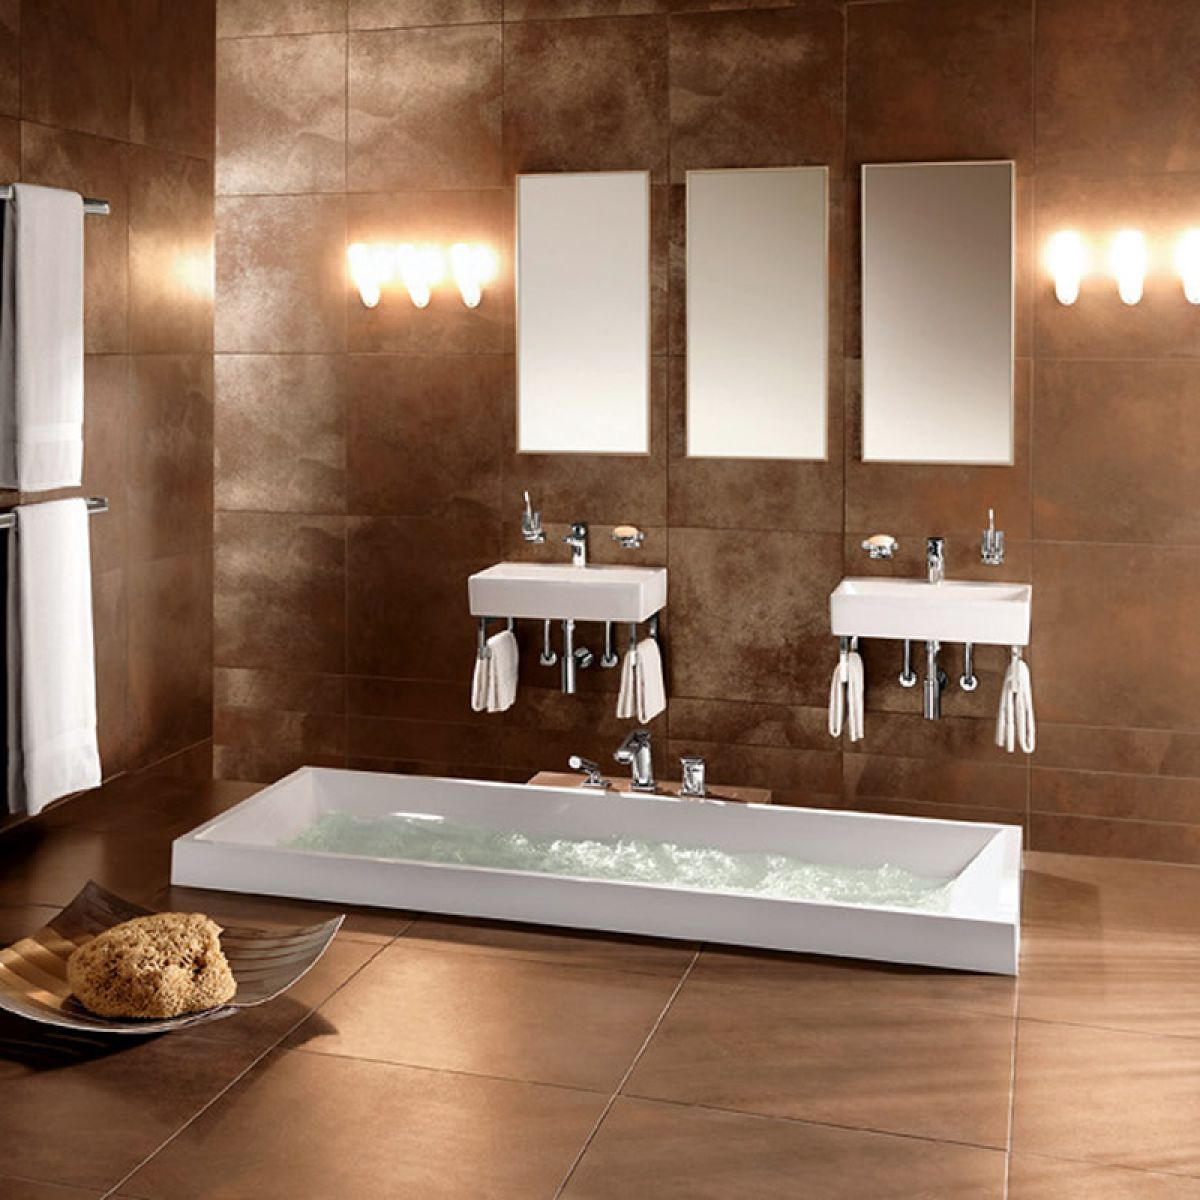 villeroy boch fire ice tile 2409 15 - Bathroom Designs Villeroy And Boch